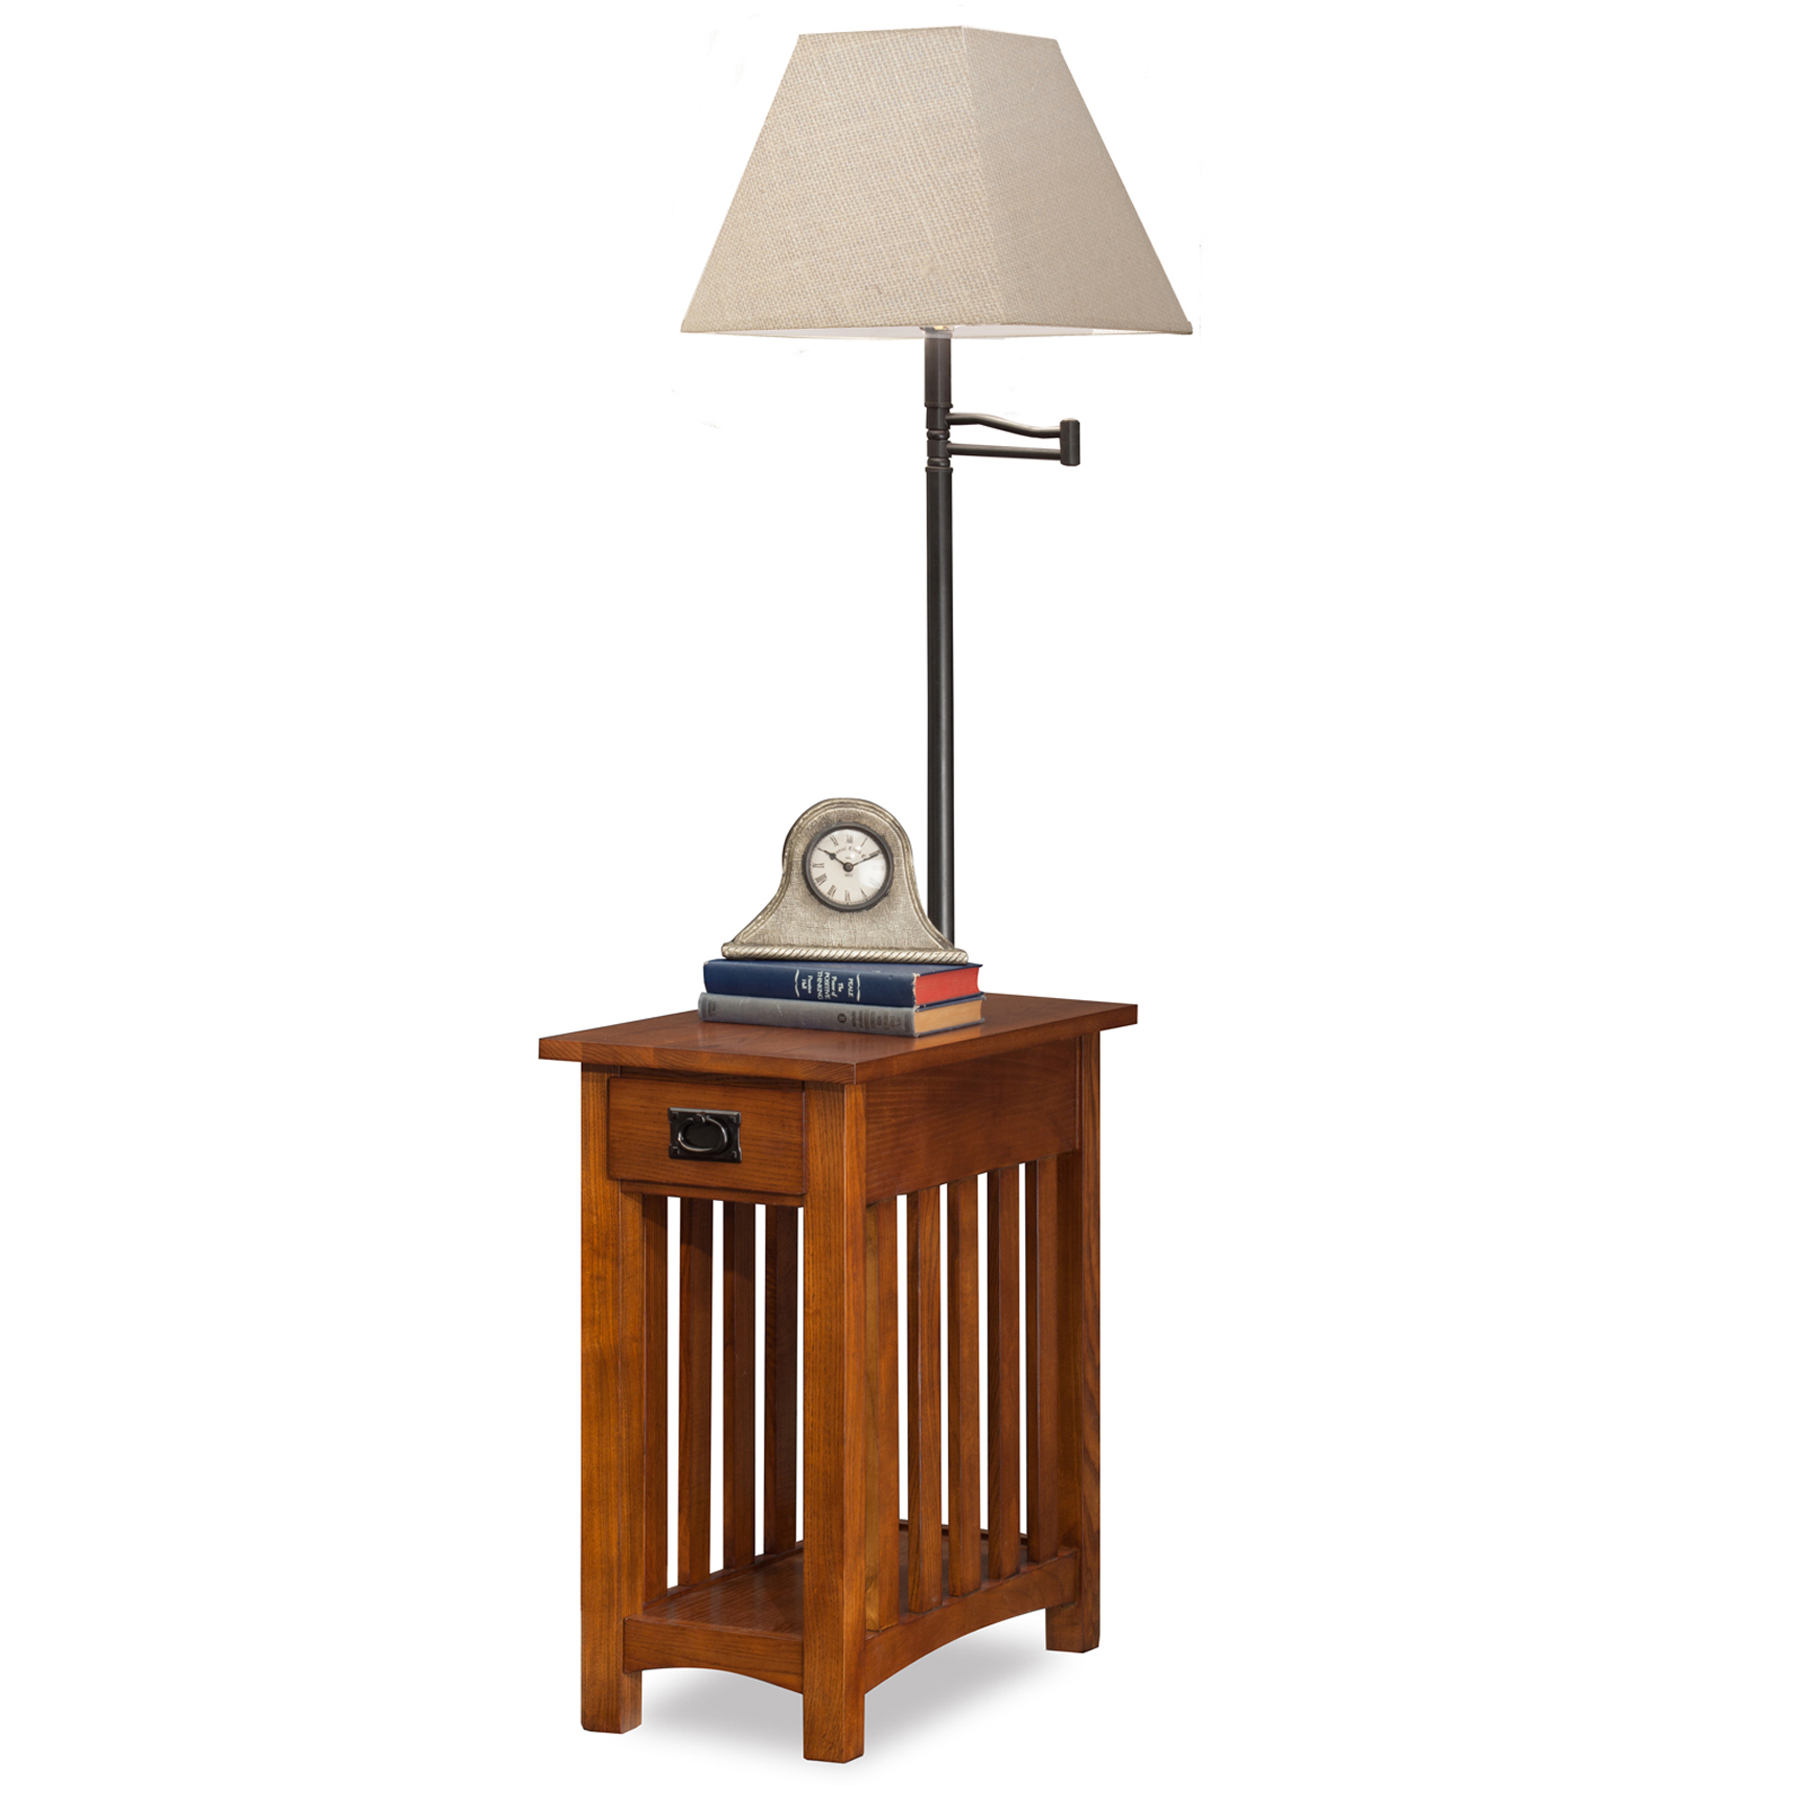 Mission Chairside Swing Arm Lamp Table With Burlap Shade #10028 ...